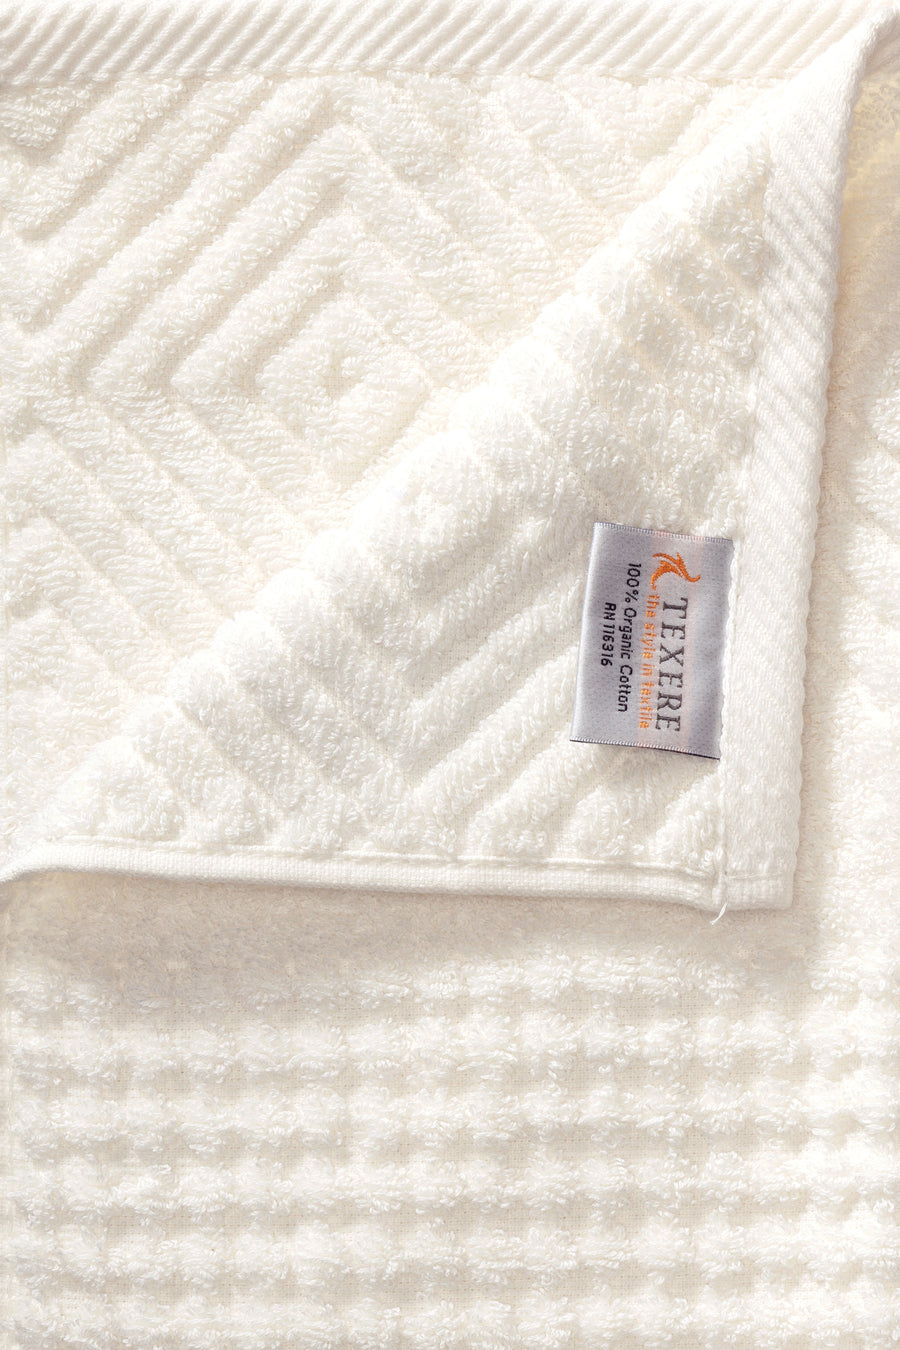 Aloe - Organic Cotton Jacquard Bath Towels - 2 Pack - TexereSilk